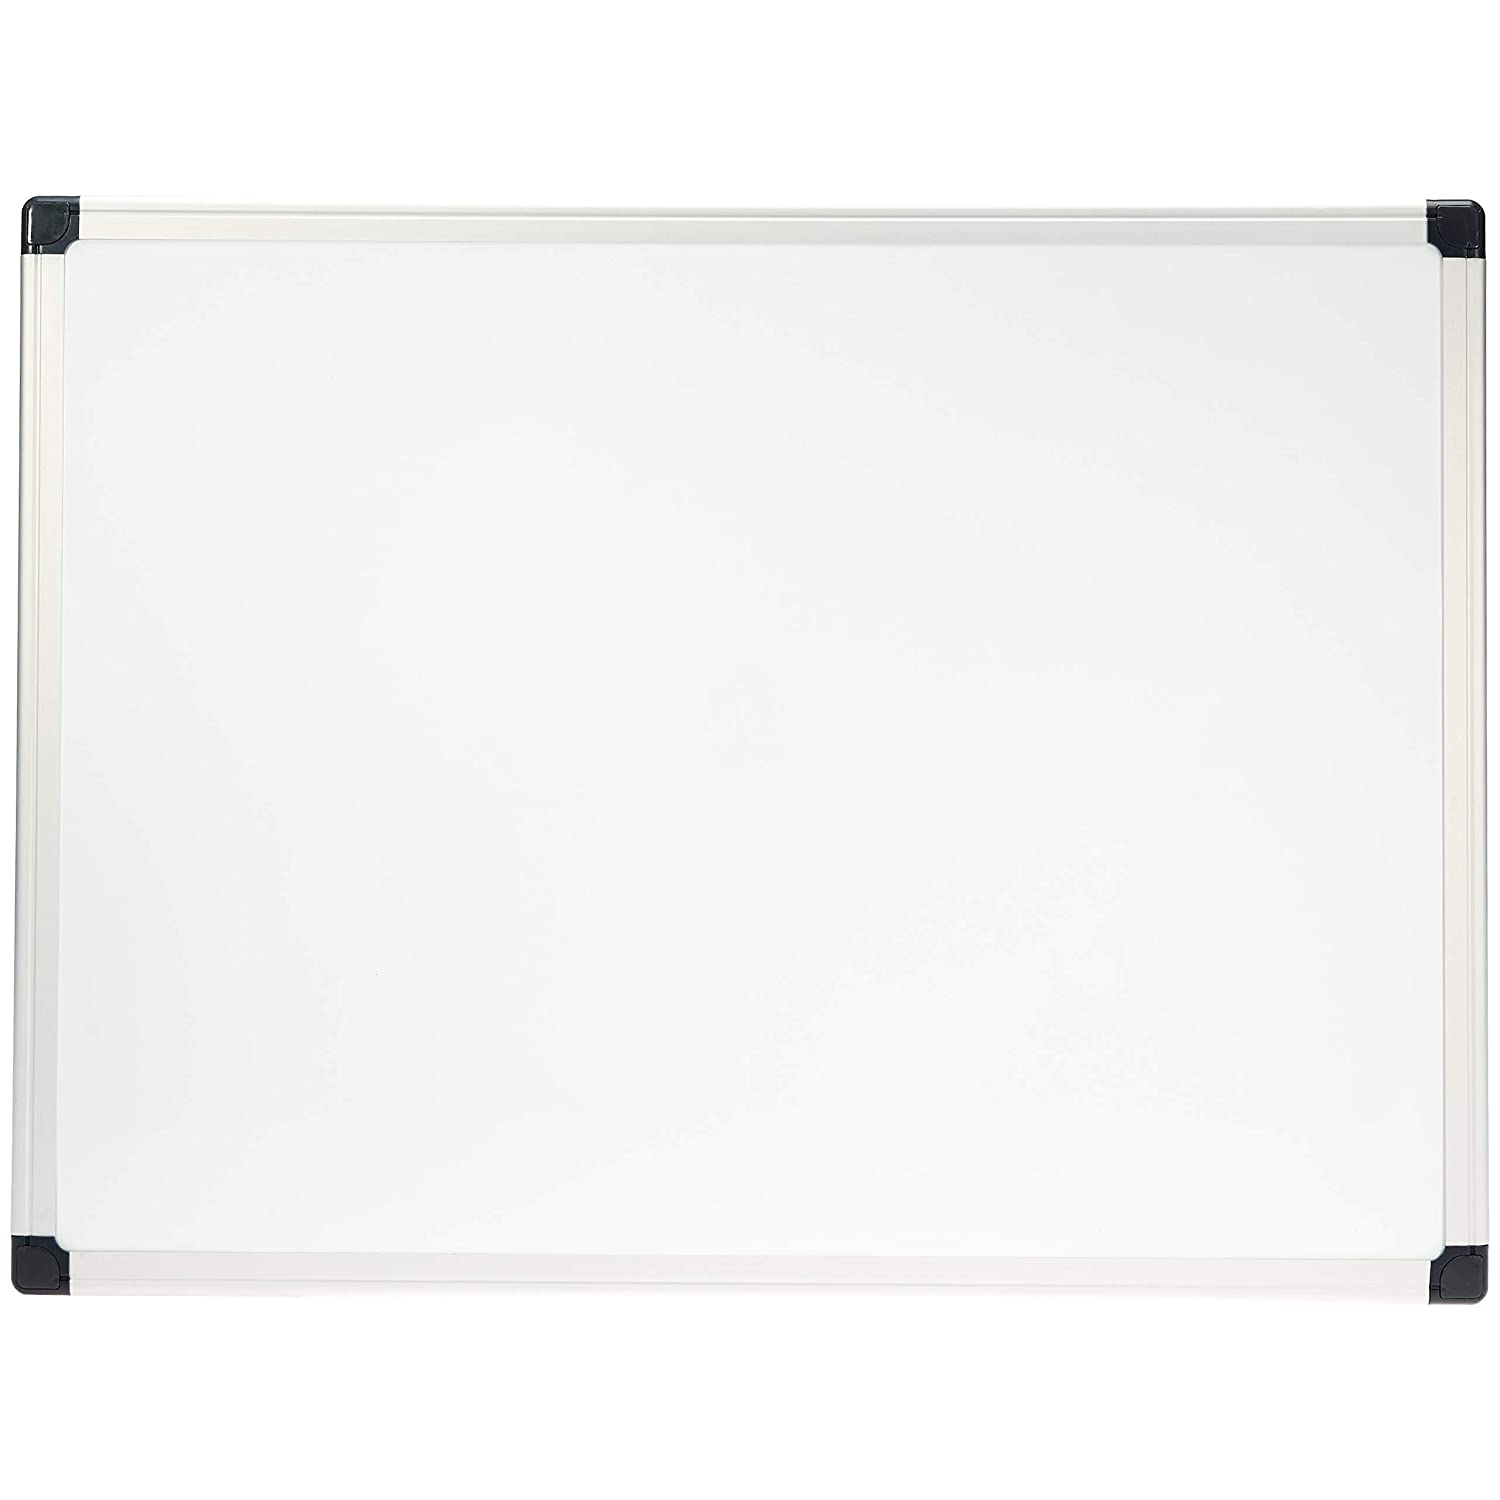 Basics Magnetic Framed Dry Erase White Board, 17 x 23 Inch